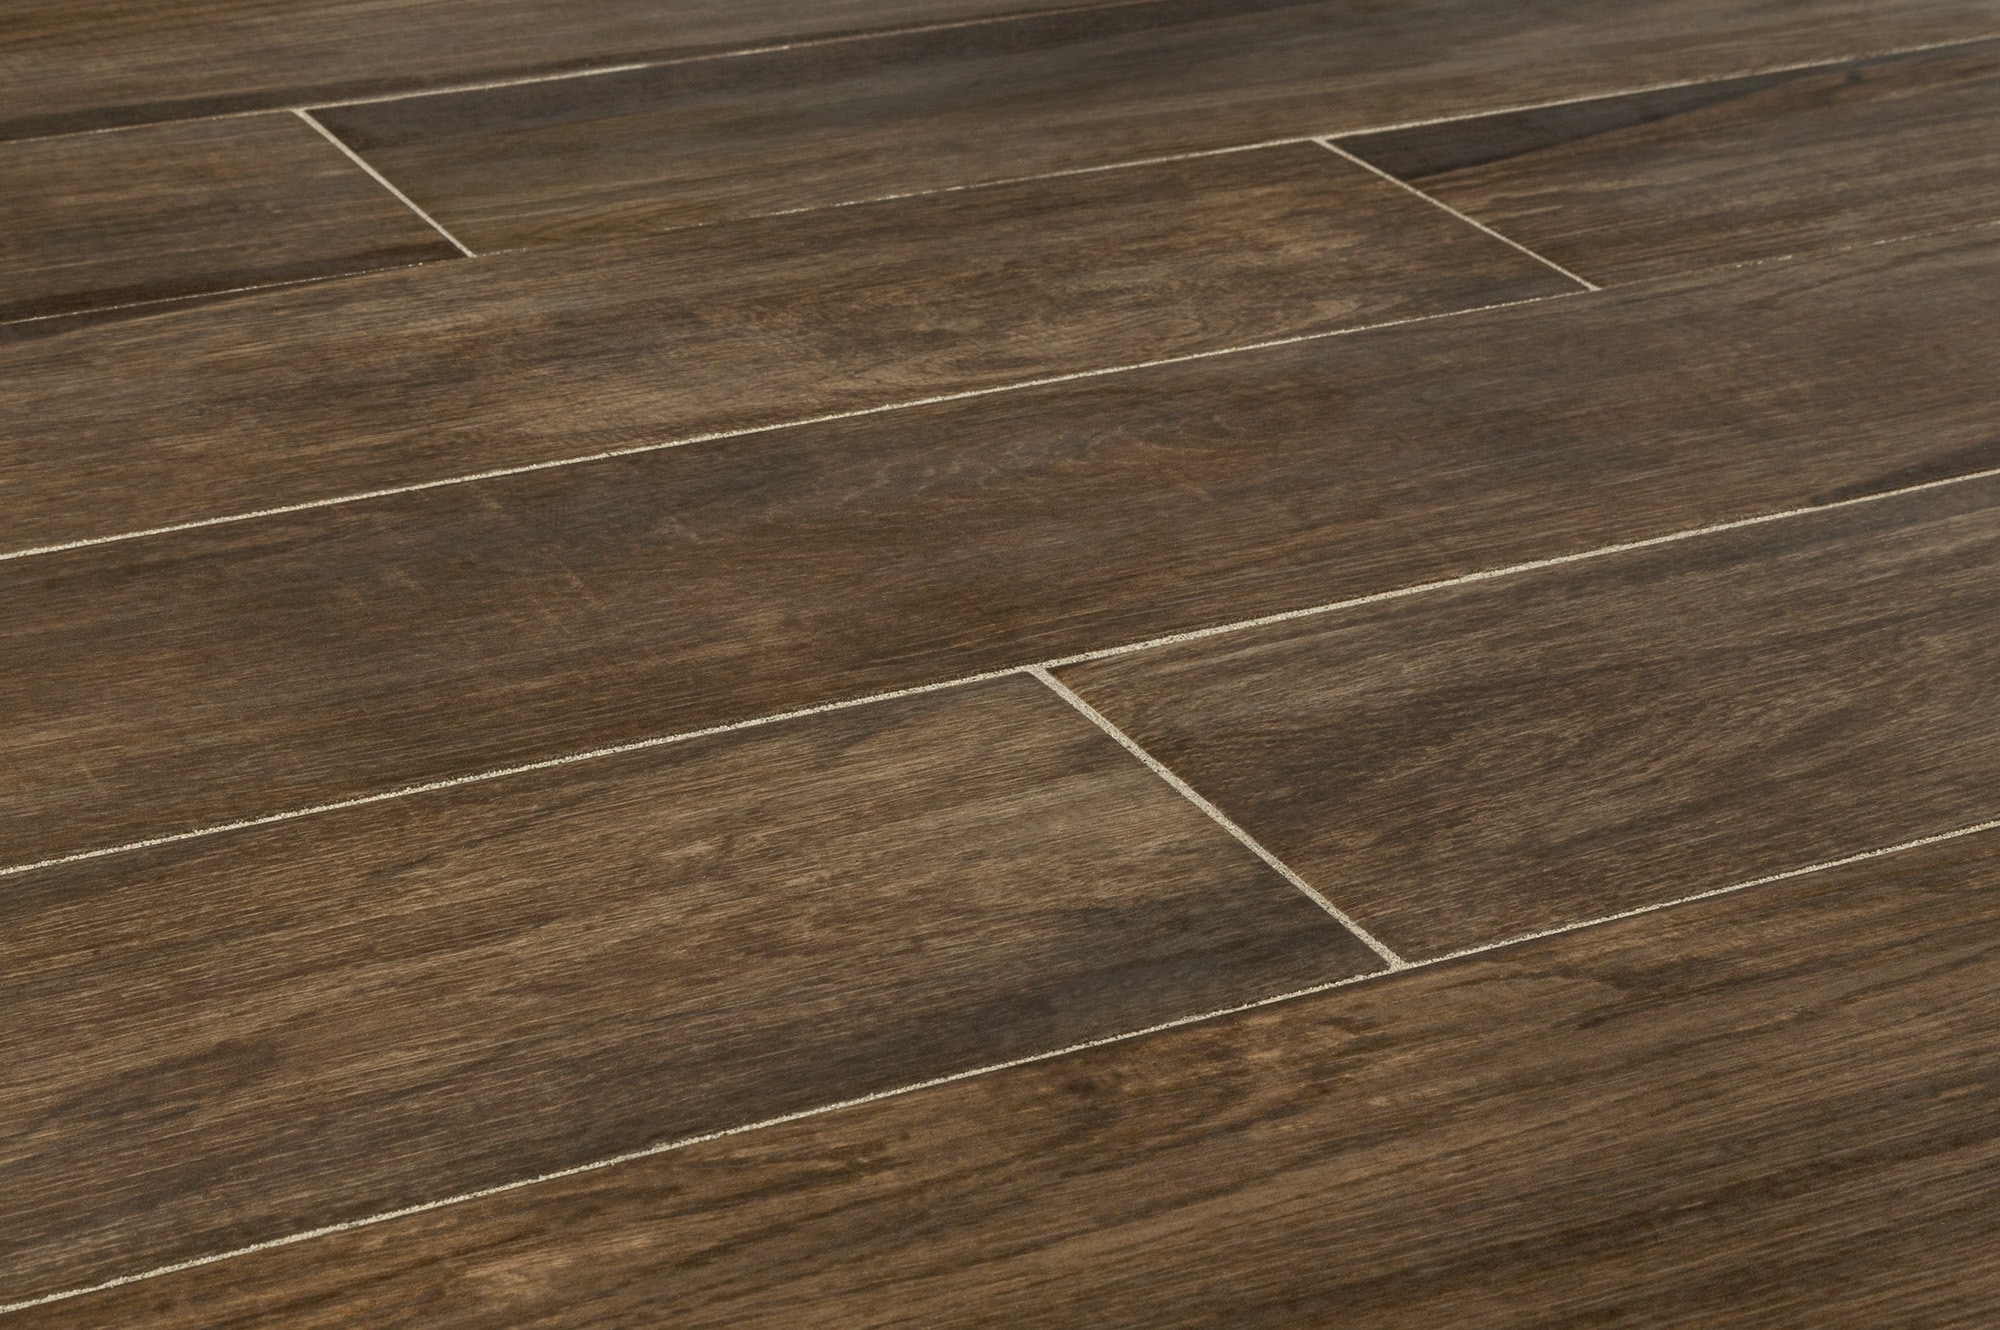 Kaska Porcelain Tile Amazon Wood Series Rio Palm 6 X36